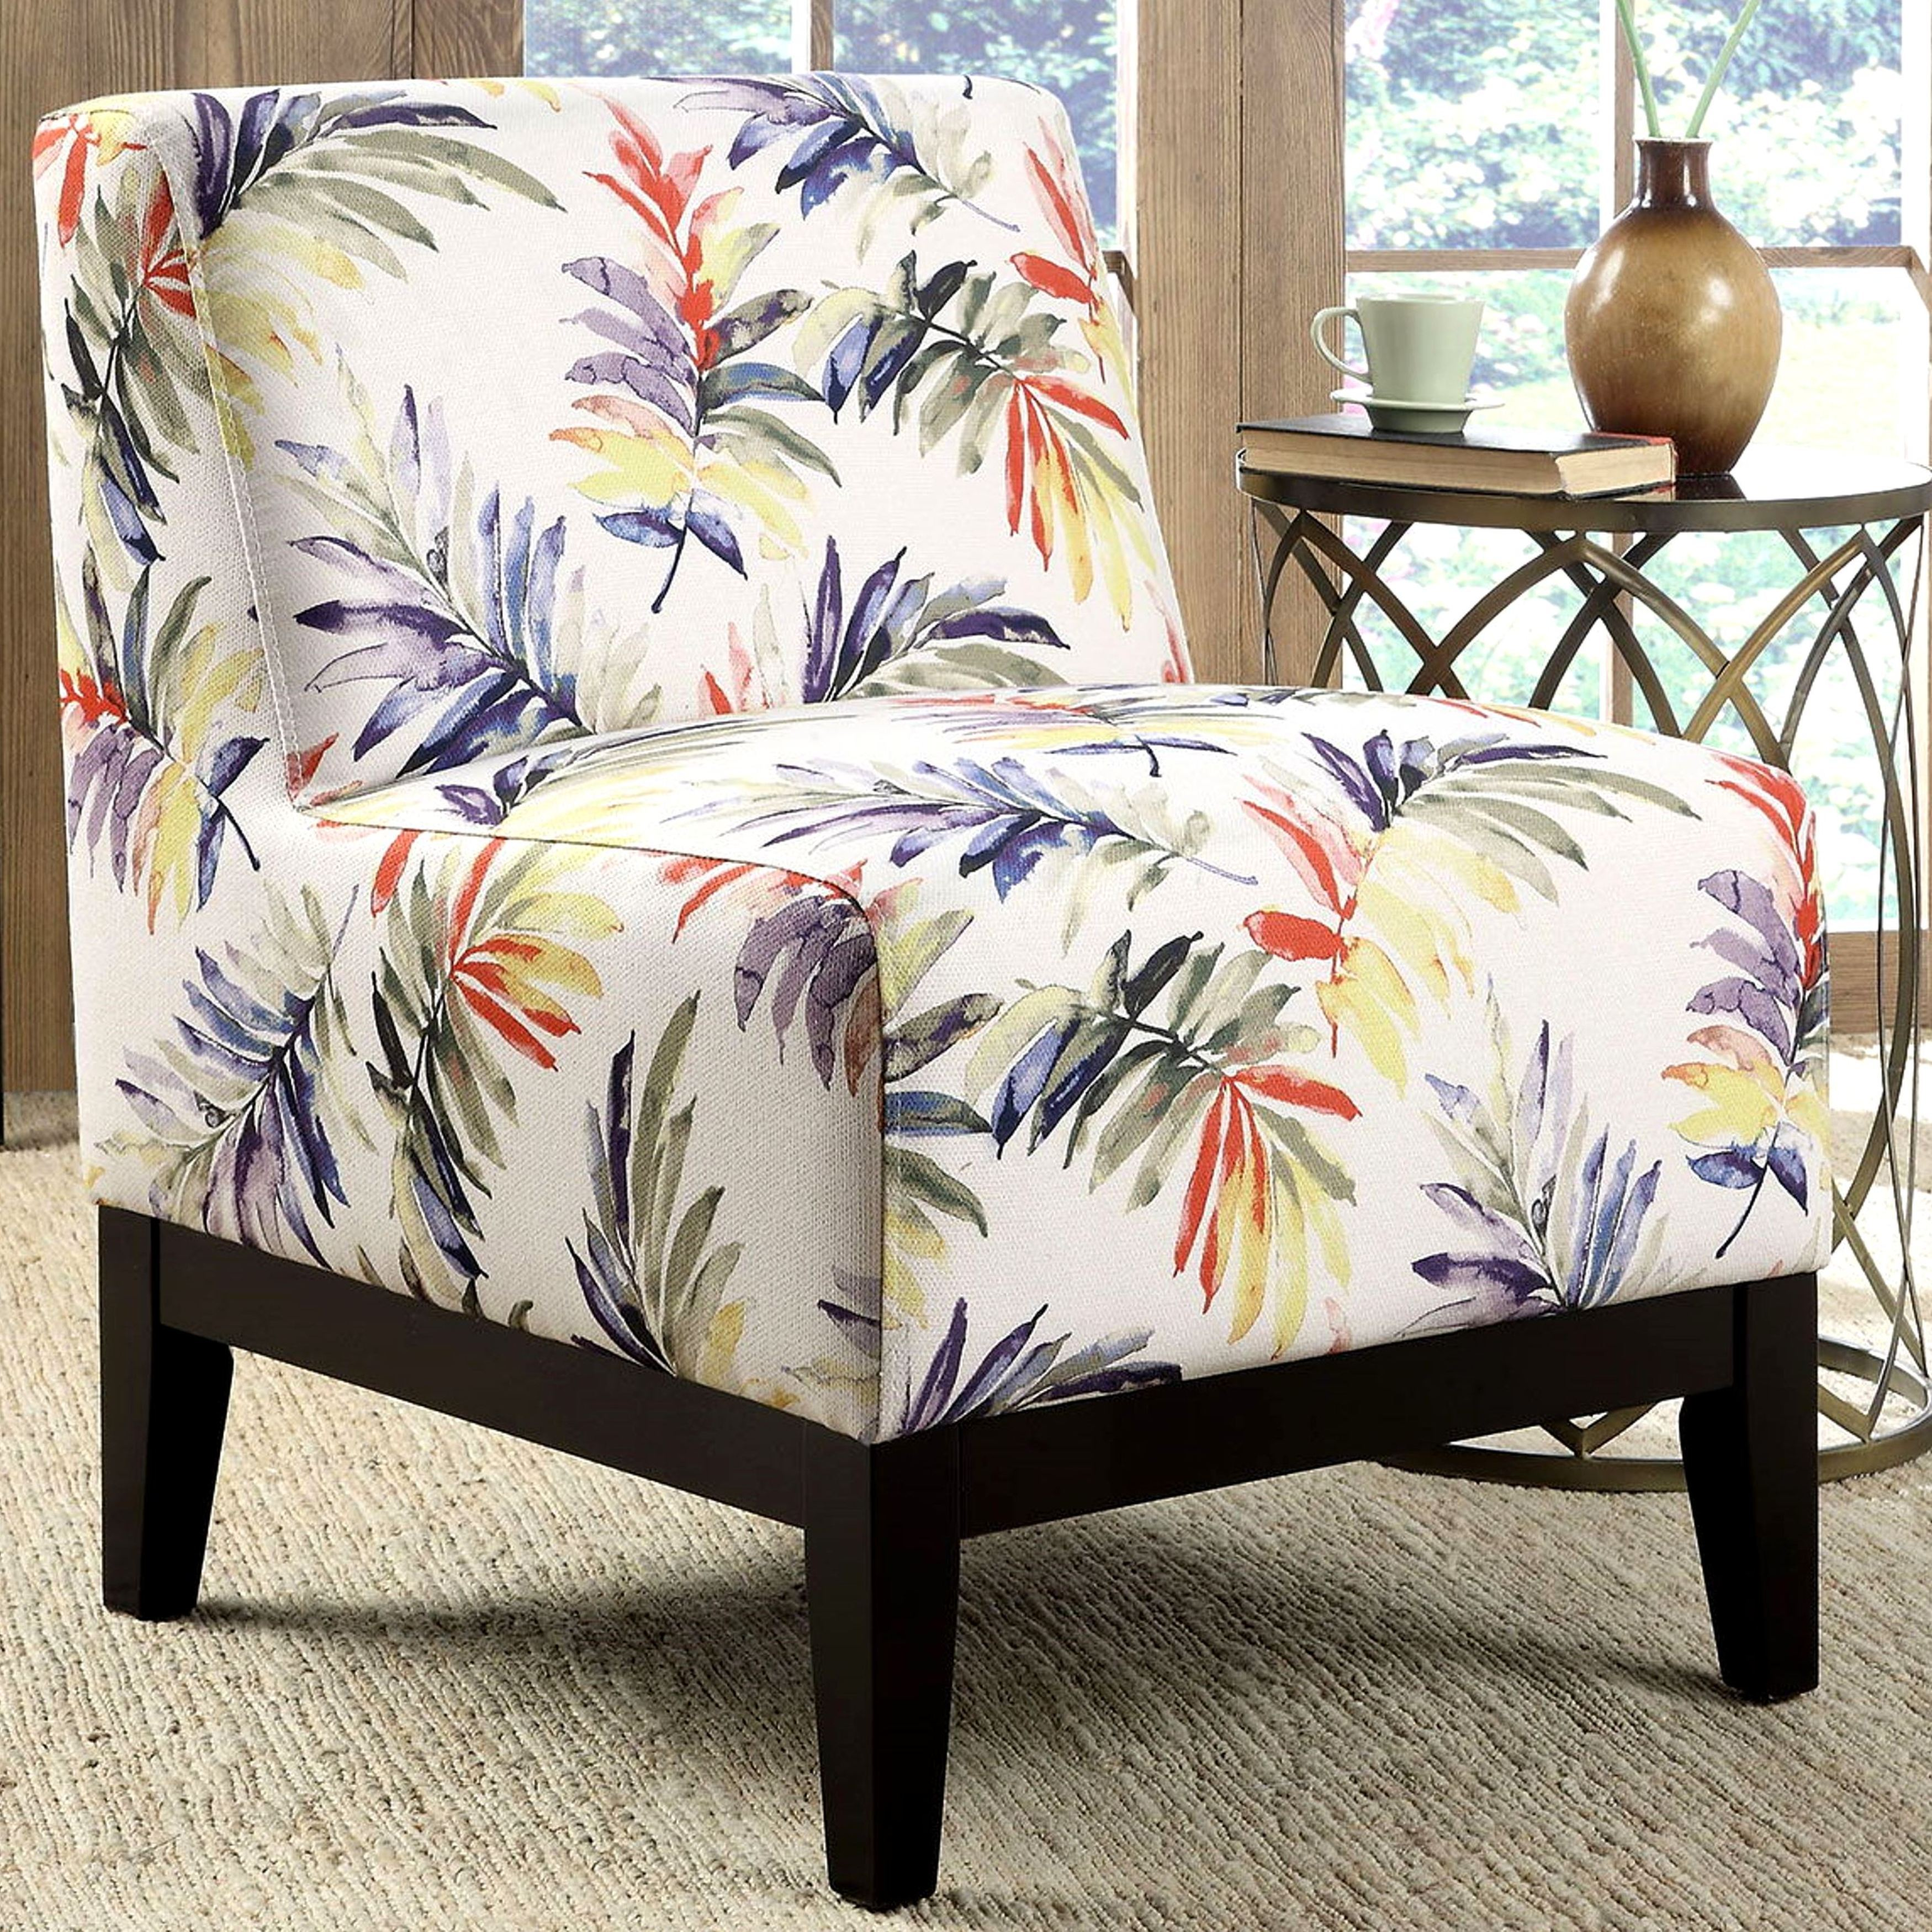 Picture of: Sycamore Artistic Purple Green Leaf Printed Design Slipper Accent Chair Overstock 10769045